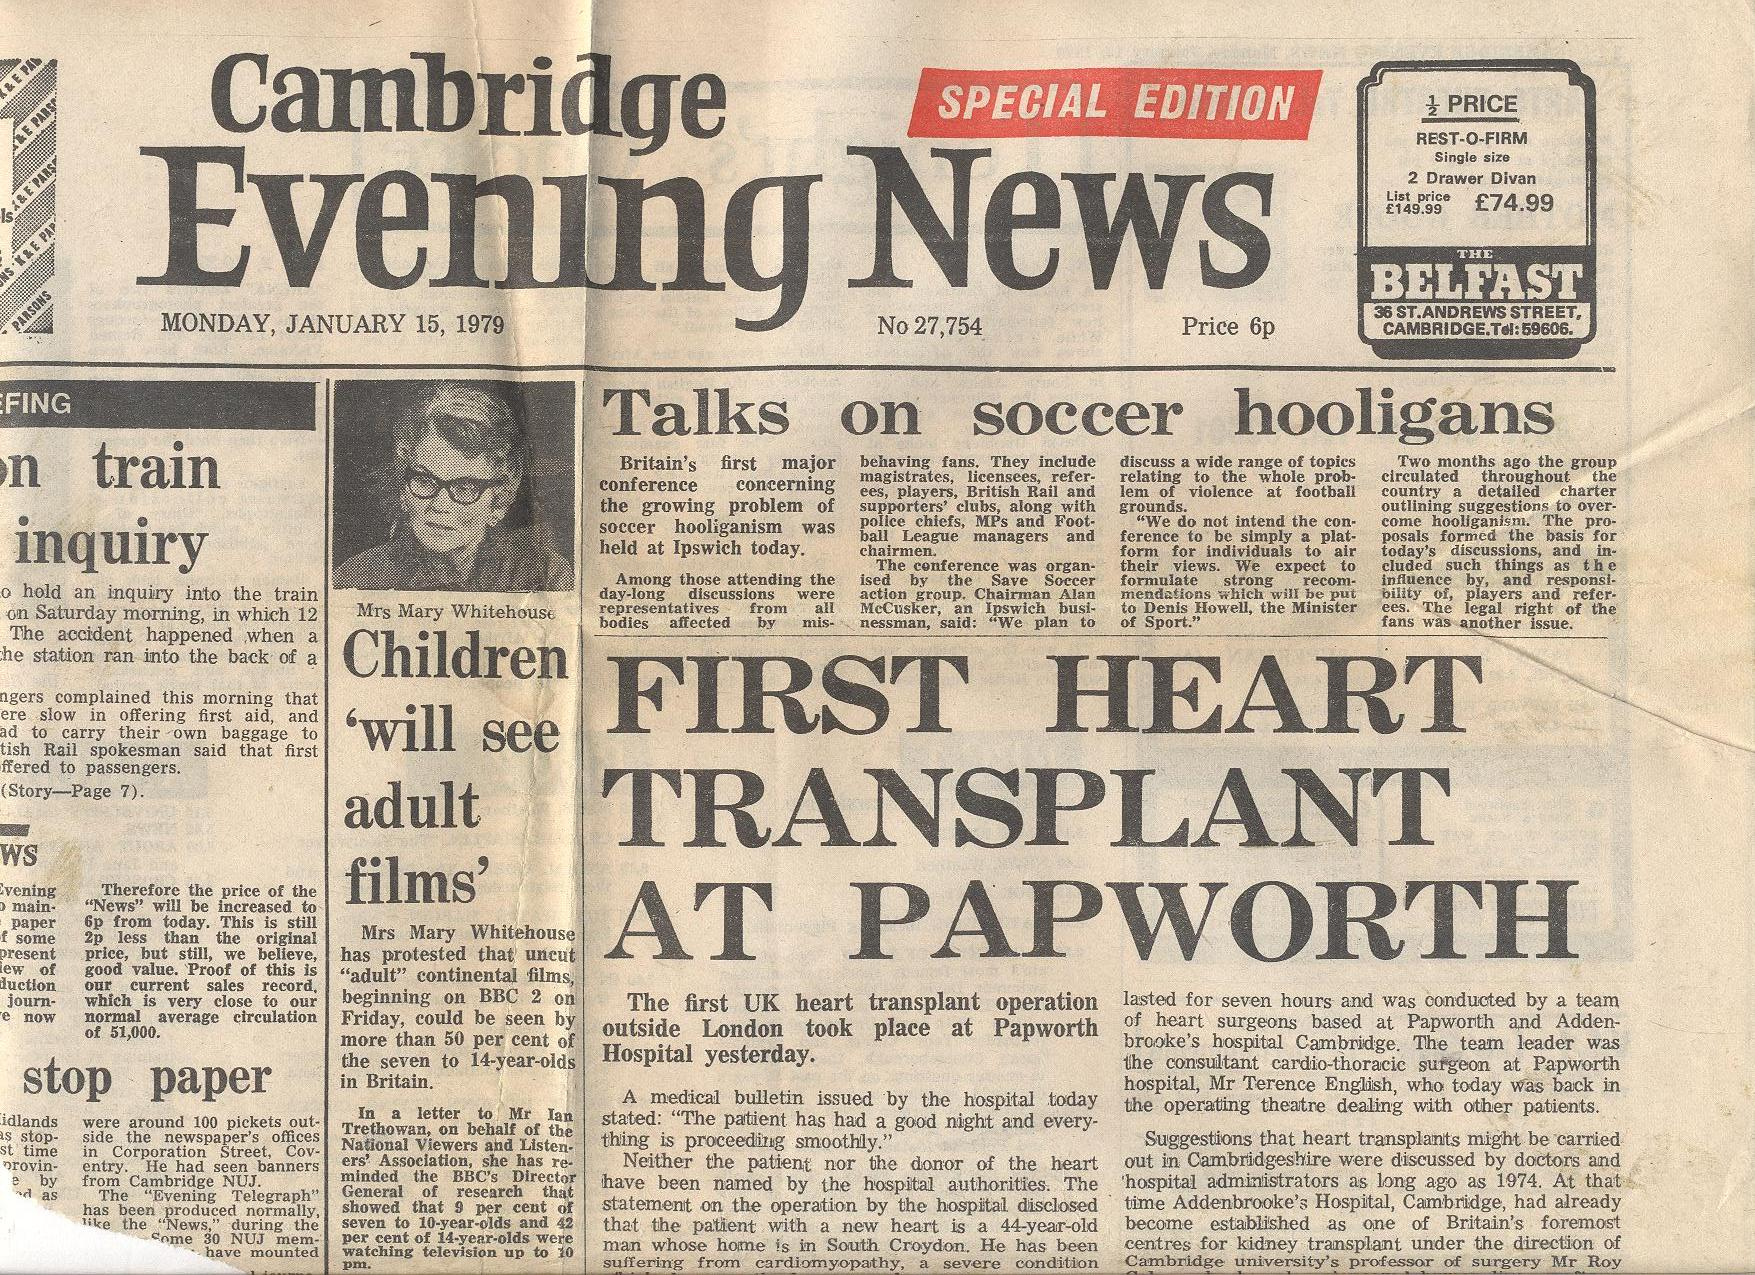 Royal Papworth Hospital celebrates 40 years of heart transplantation